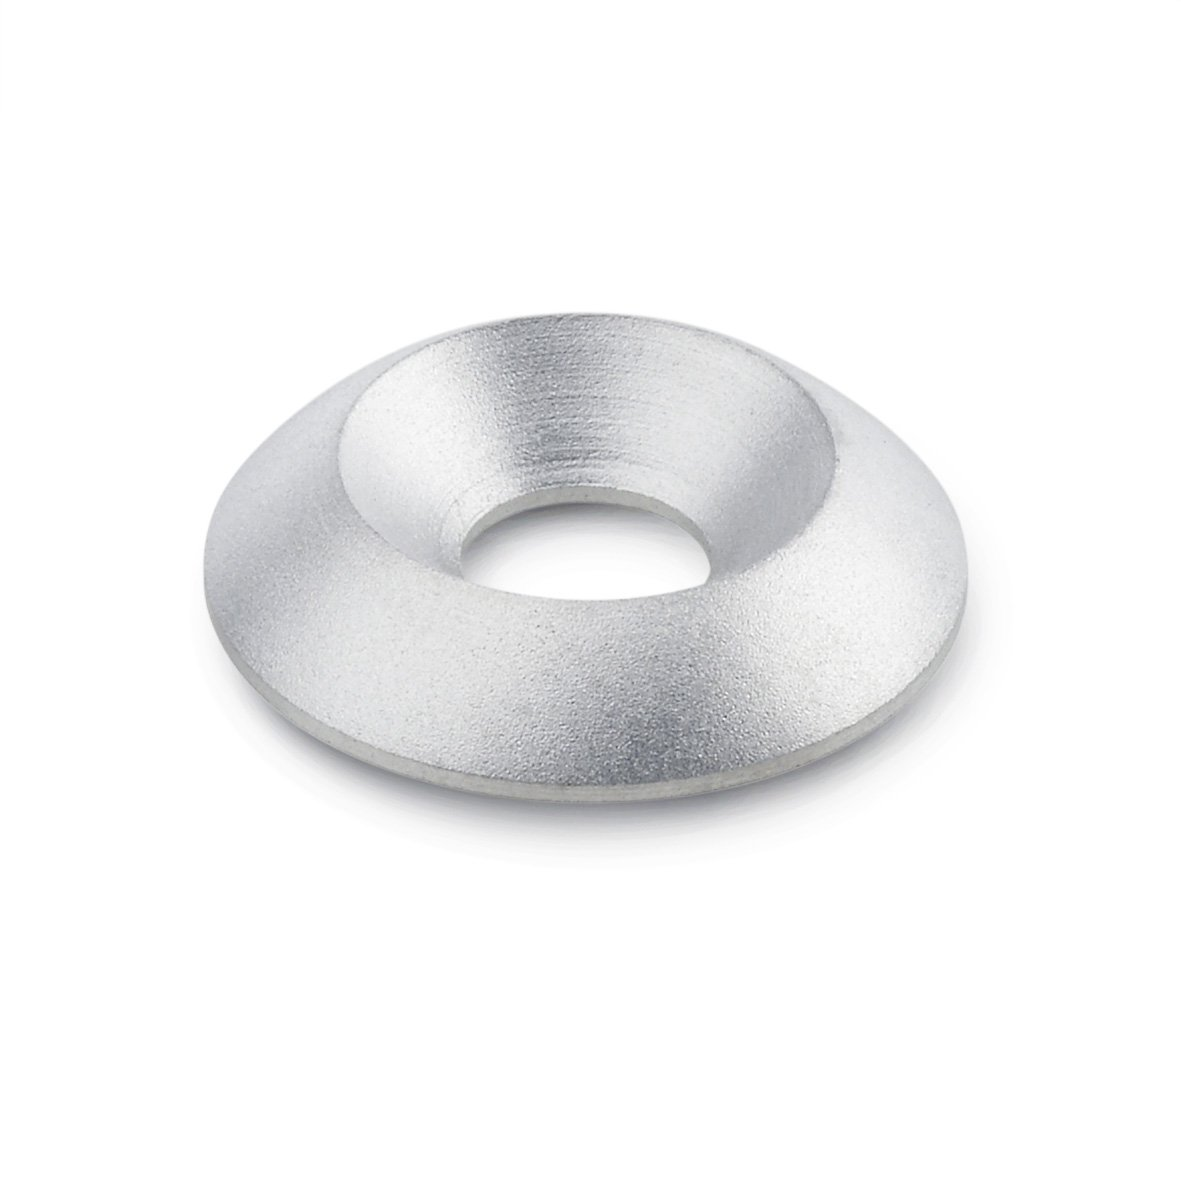 Winco 22WBAC Countersunk Washer with Plastic Cover Disk J.W Stainless Steel 22 mm OD x 60.4 mm ID GN185